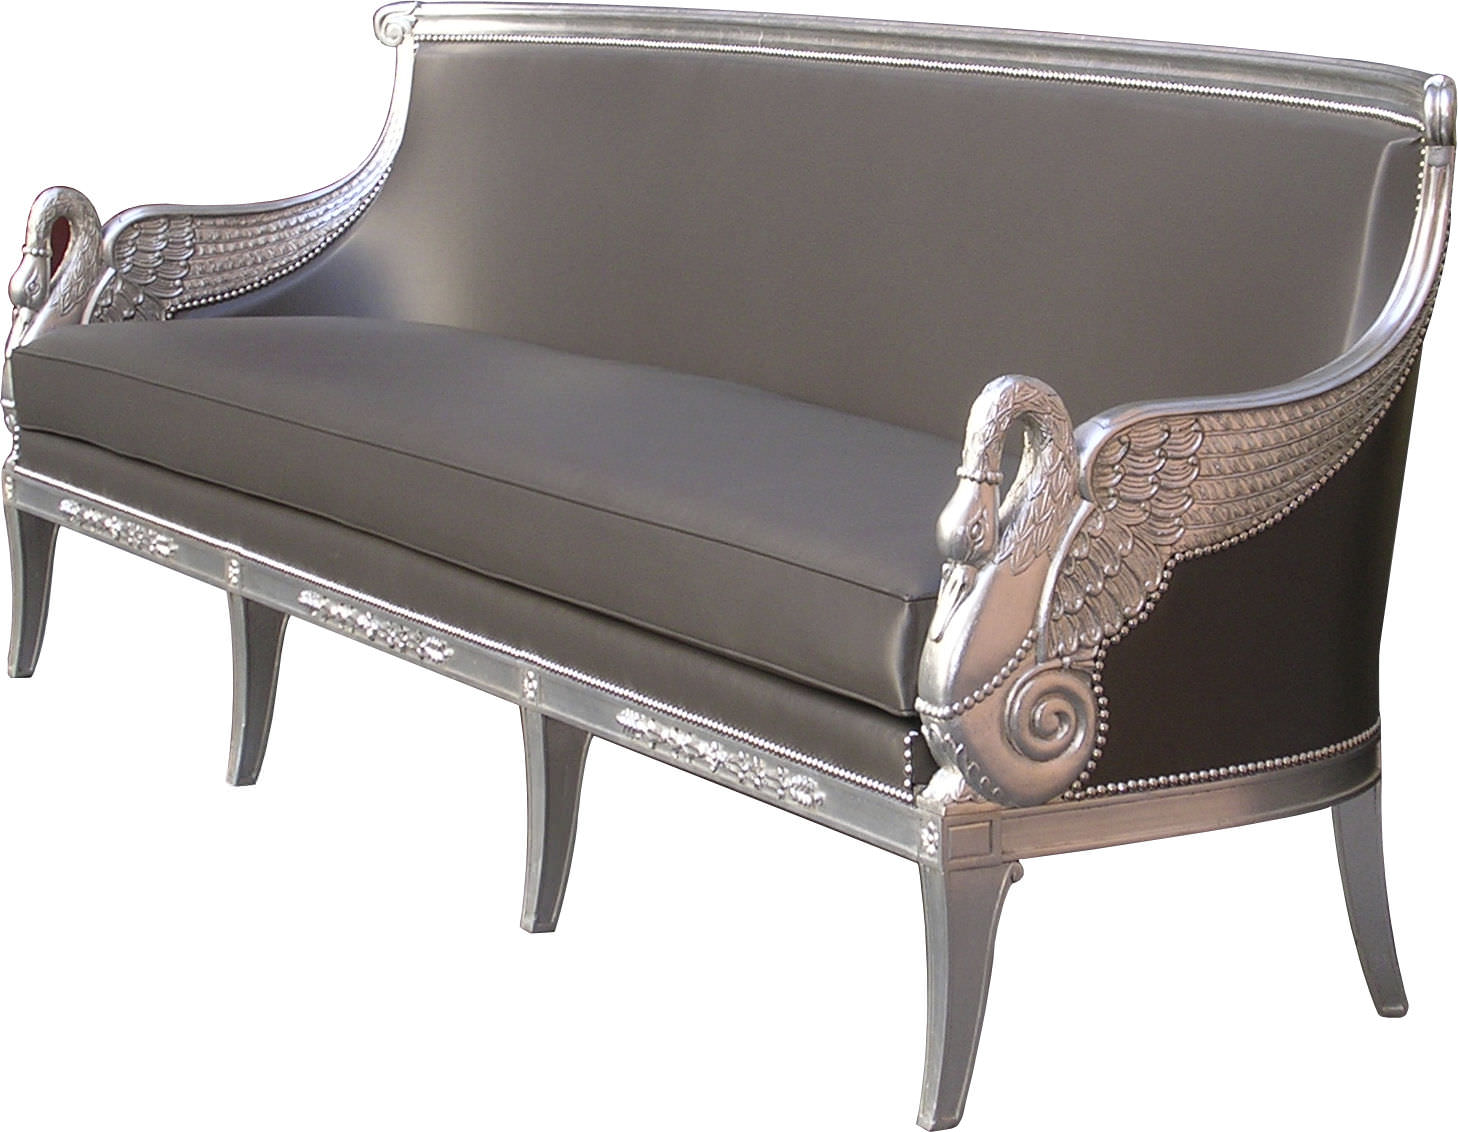 Empire Style Sofa Leather 2 Person Anthracite Cygne